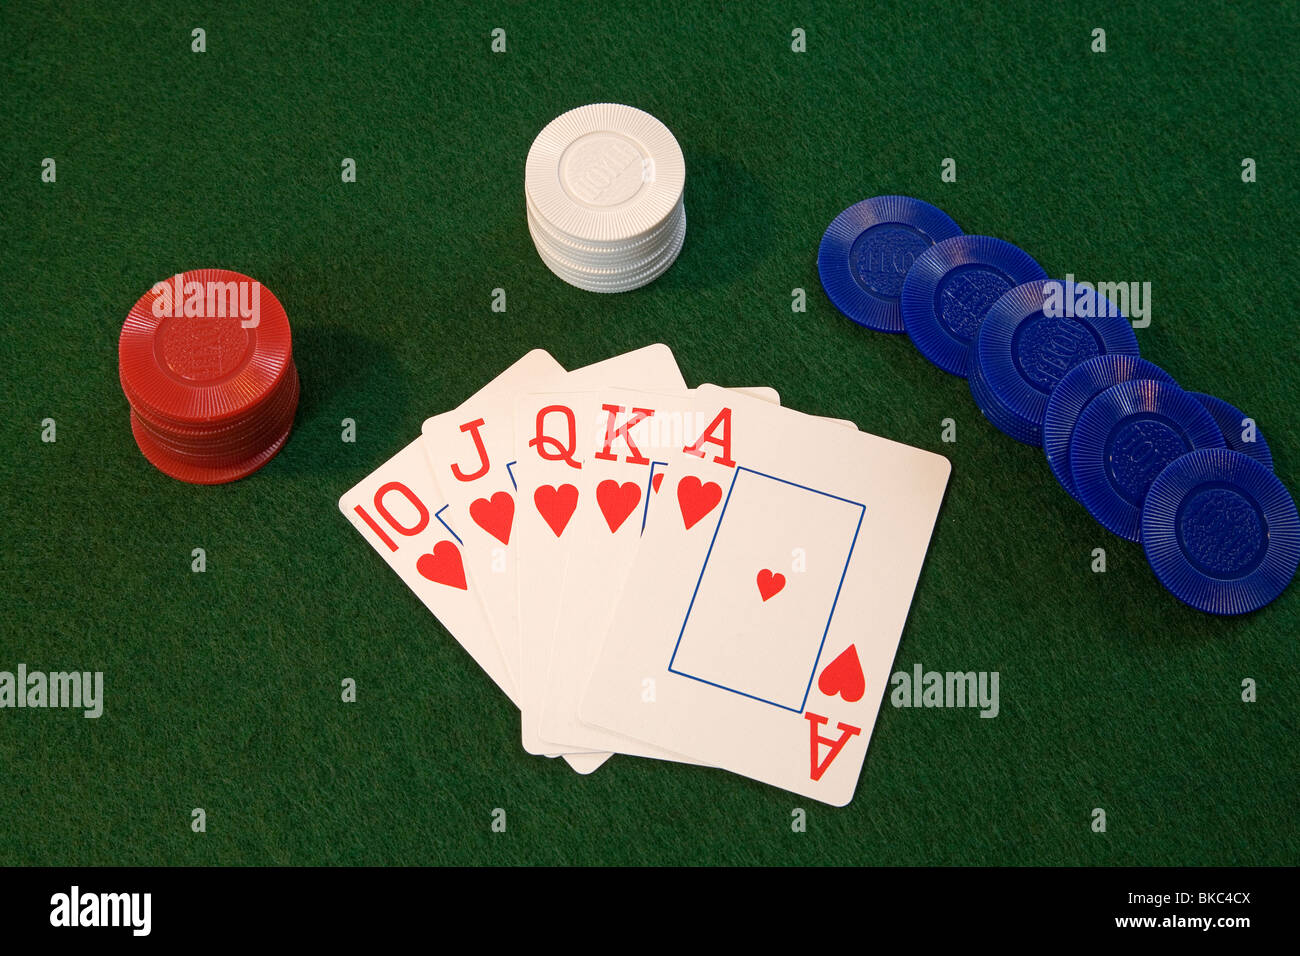 A Heart Royal Flush Of Hearts Hand In Five Card Draw Or Stud